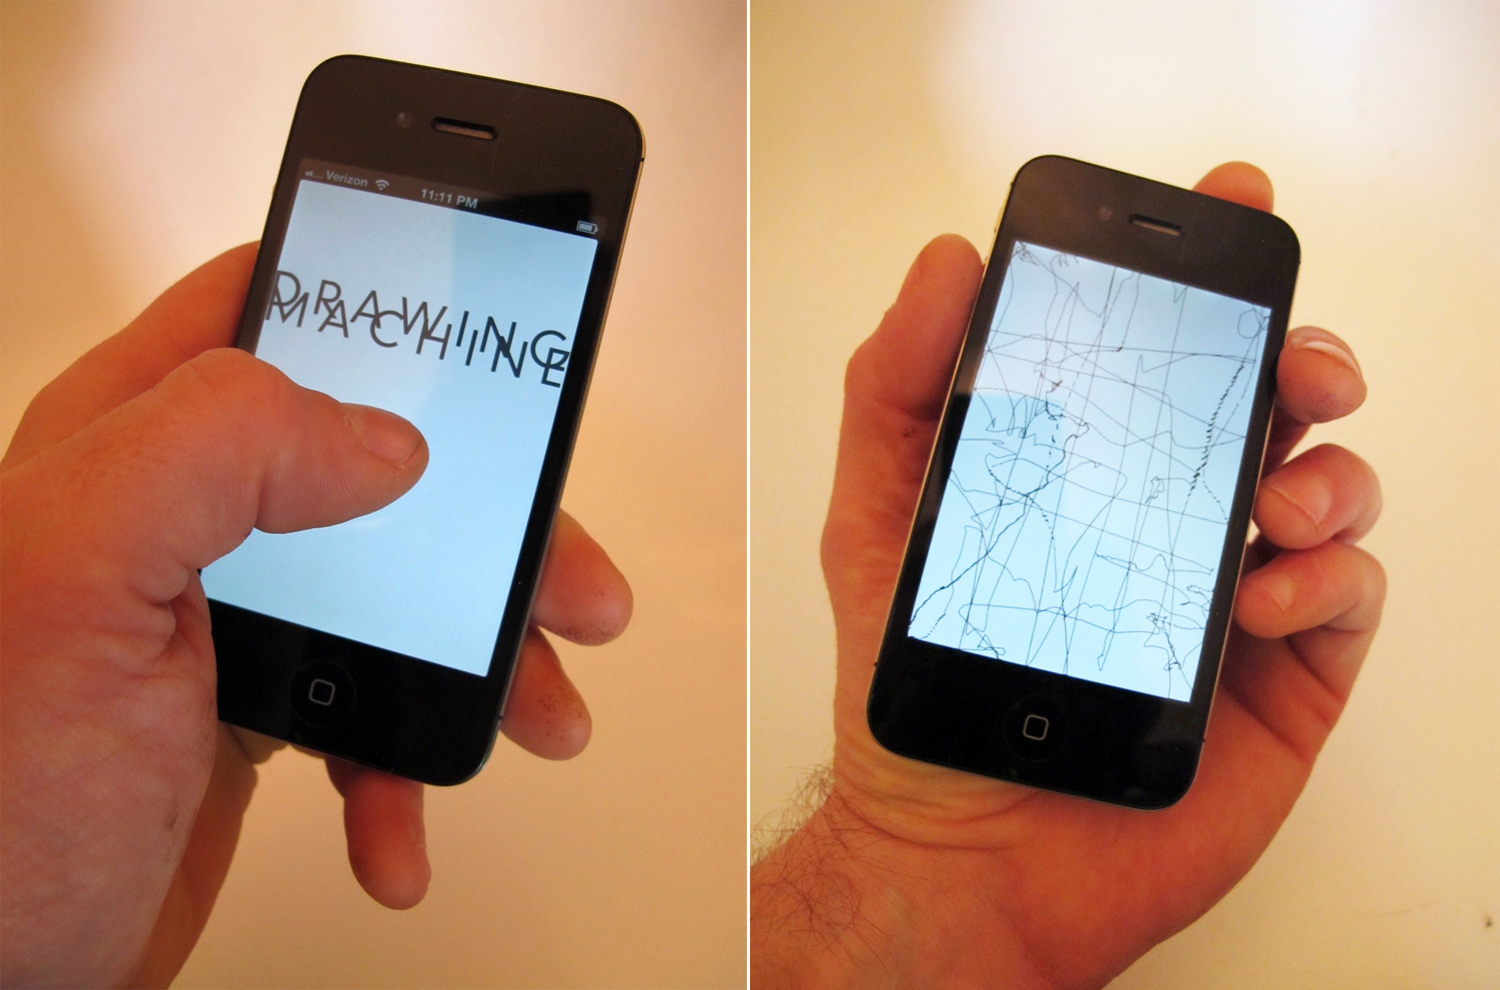 DrawingMachineAppScreen